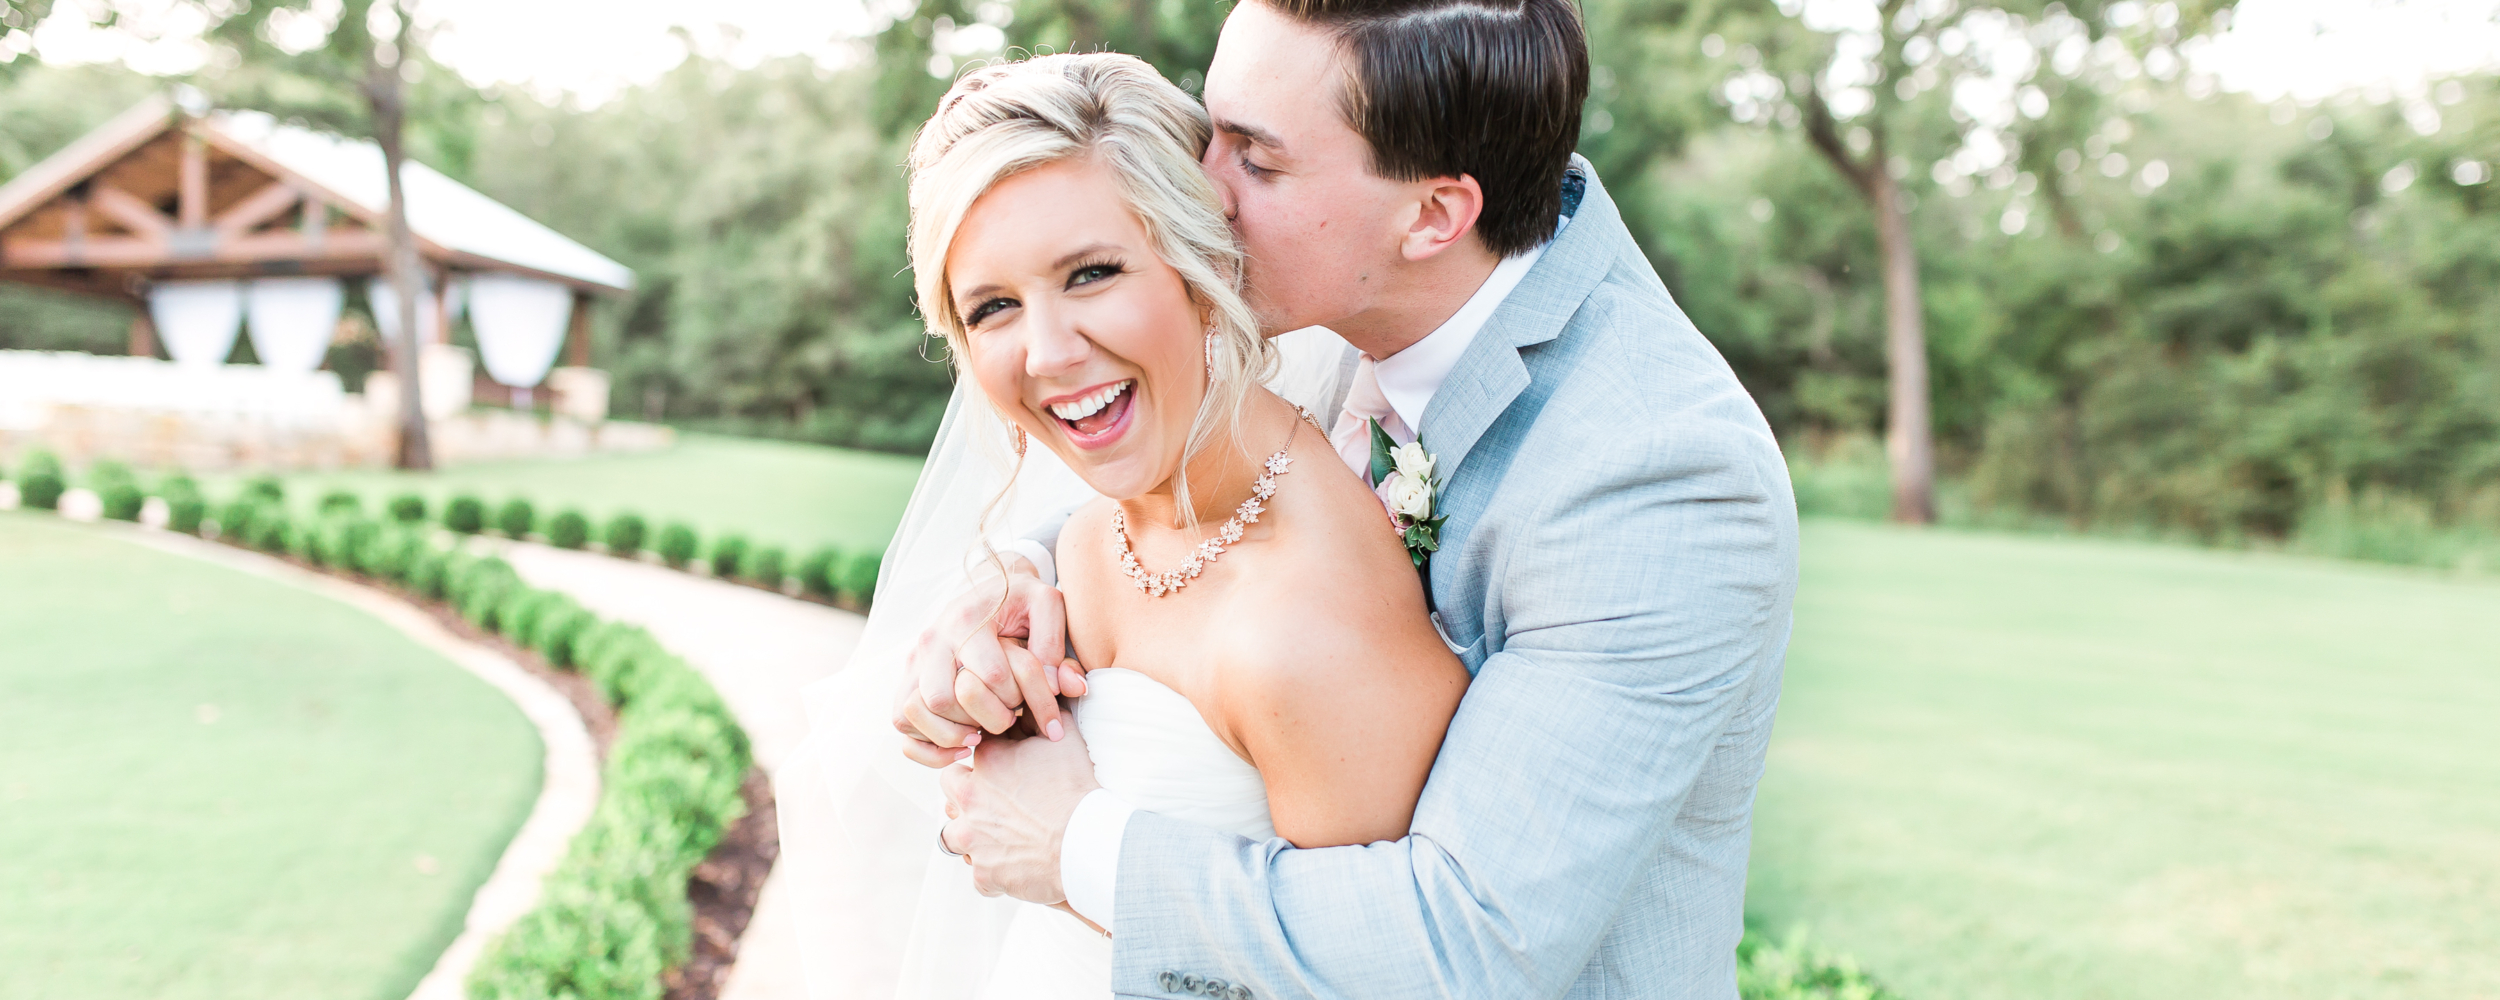 Dallas-Fort-Worth-Wedding-Photographer-1